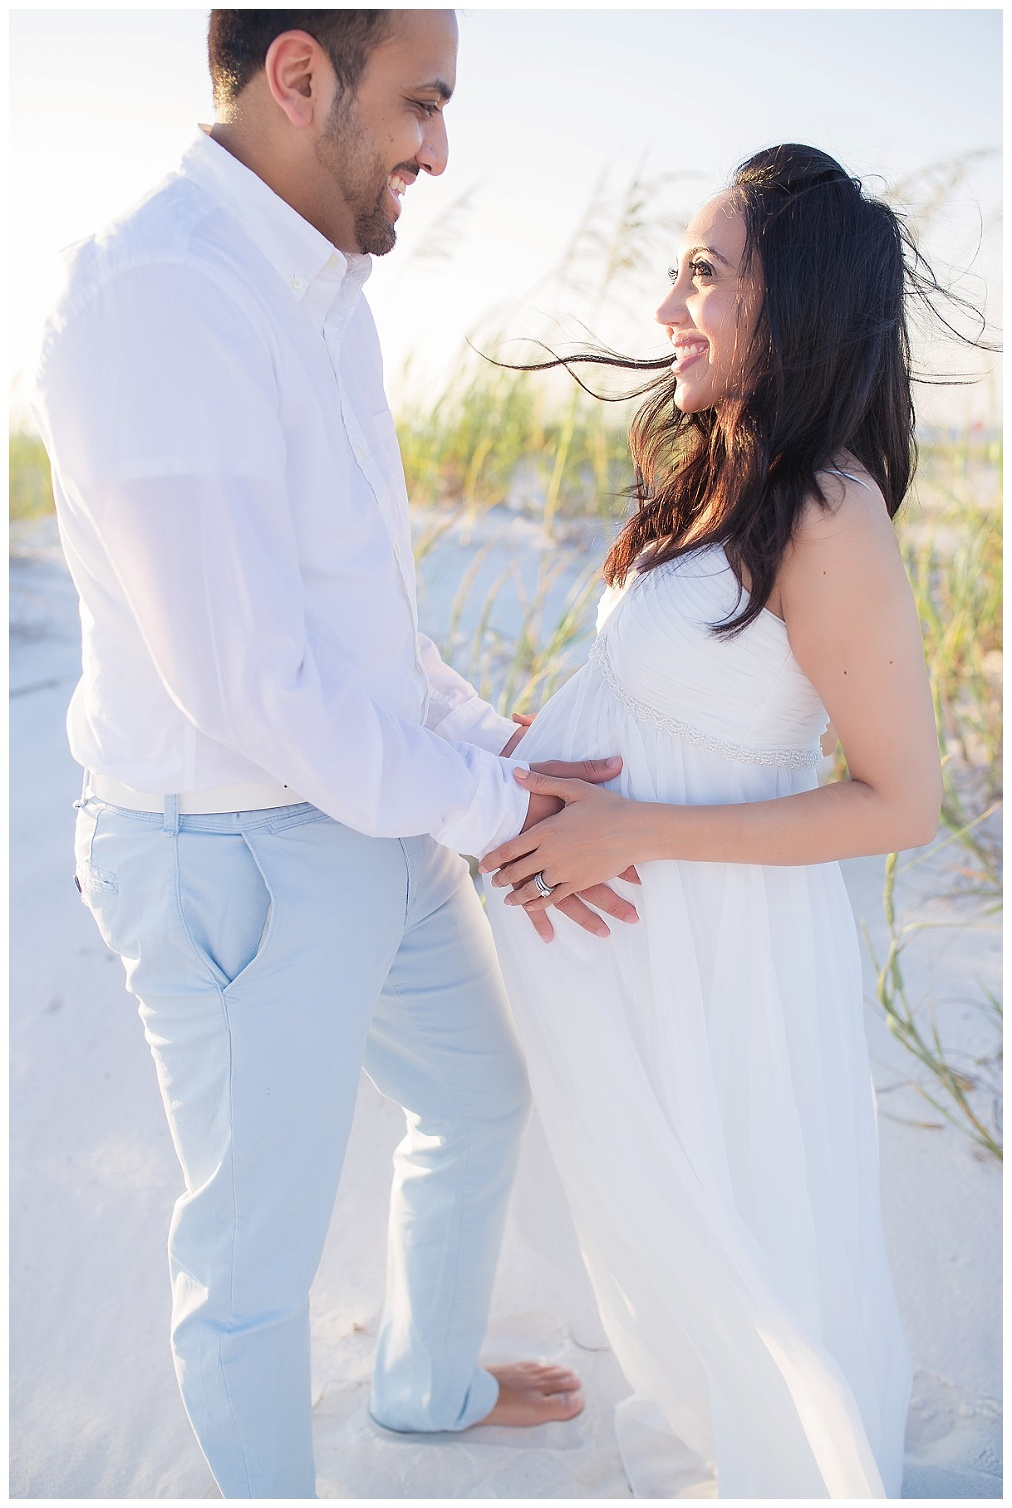 Maternity Photographer| Pensacola, Florida | Annabelle Rose Photography_0001.jpg